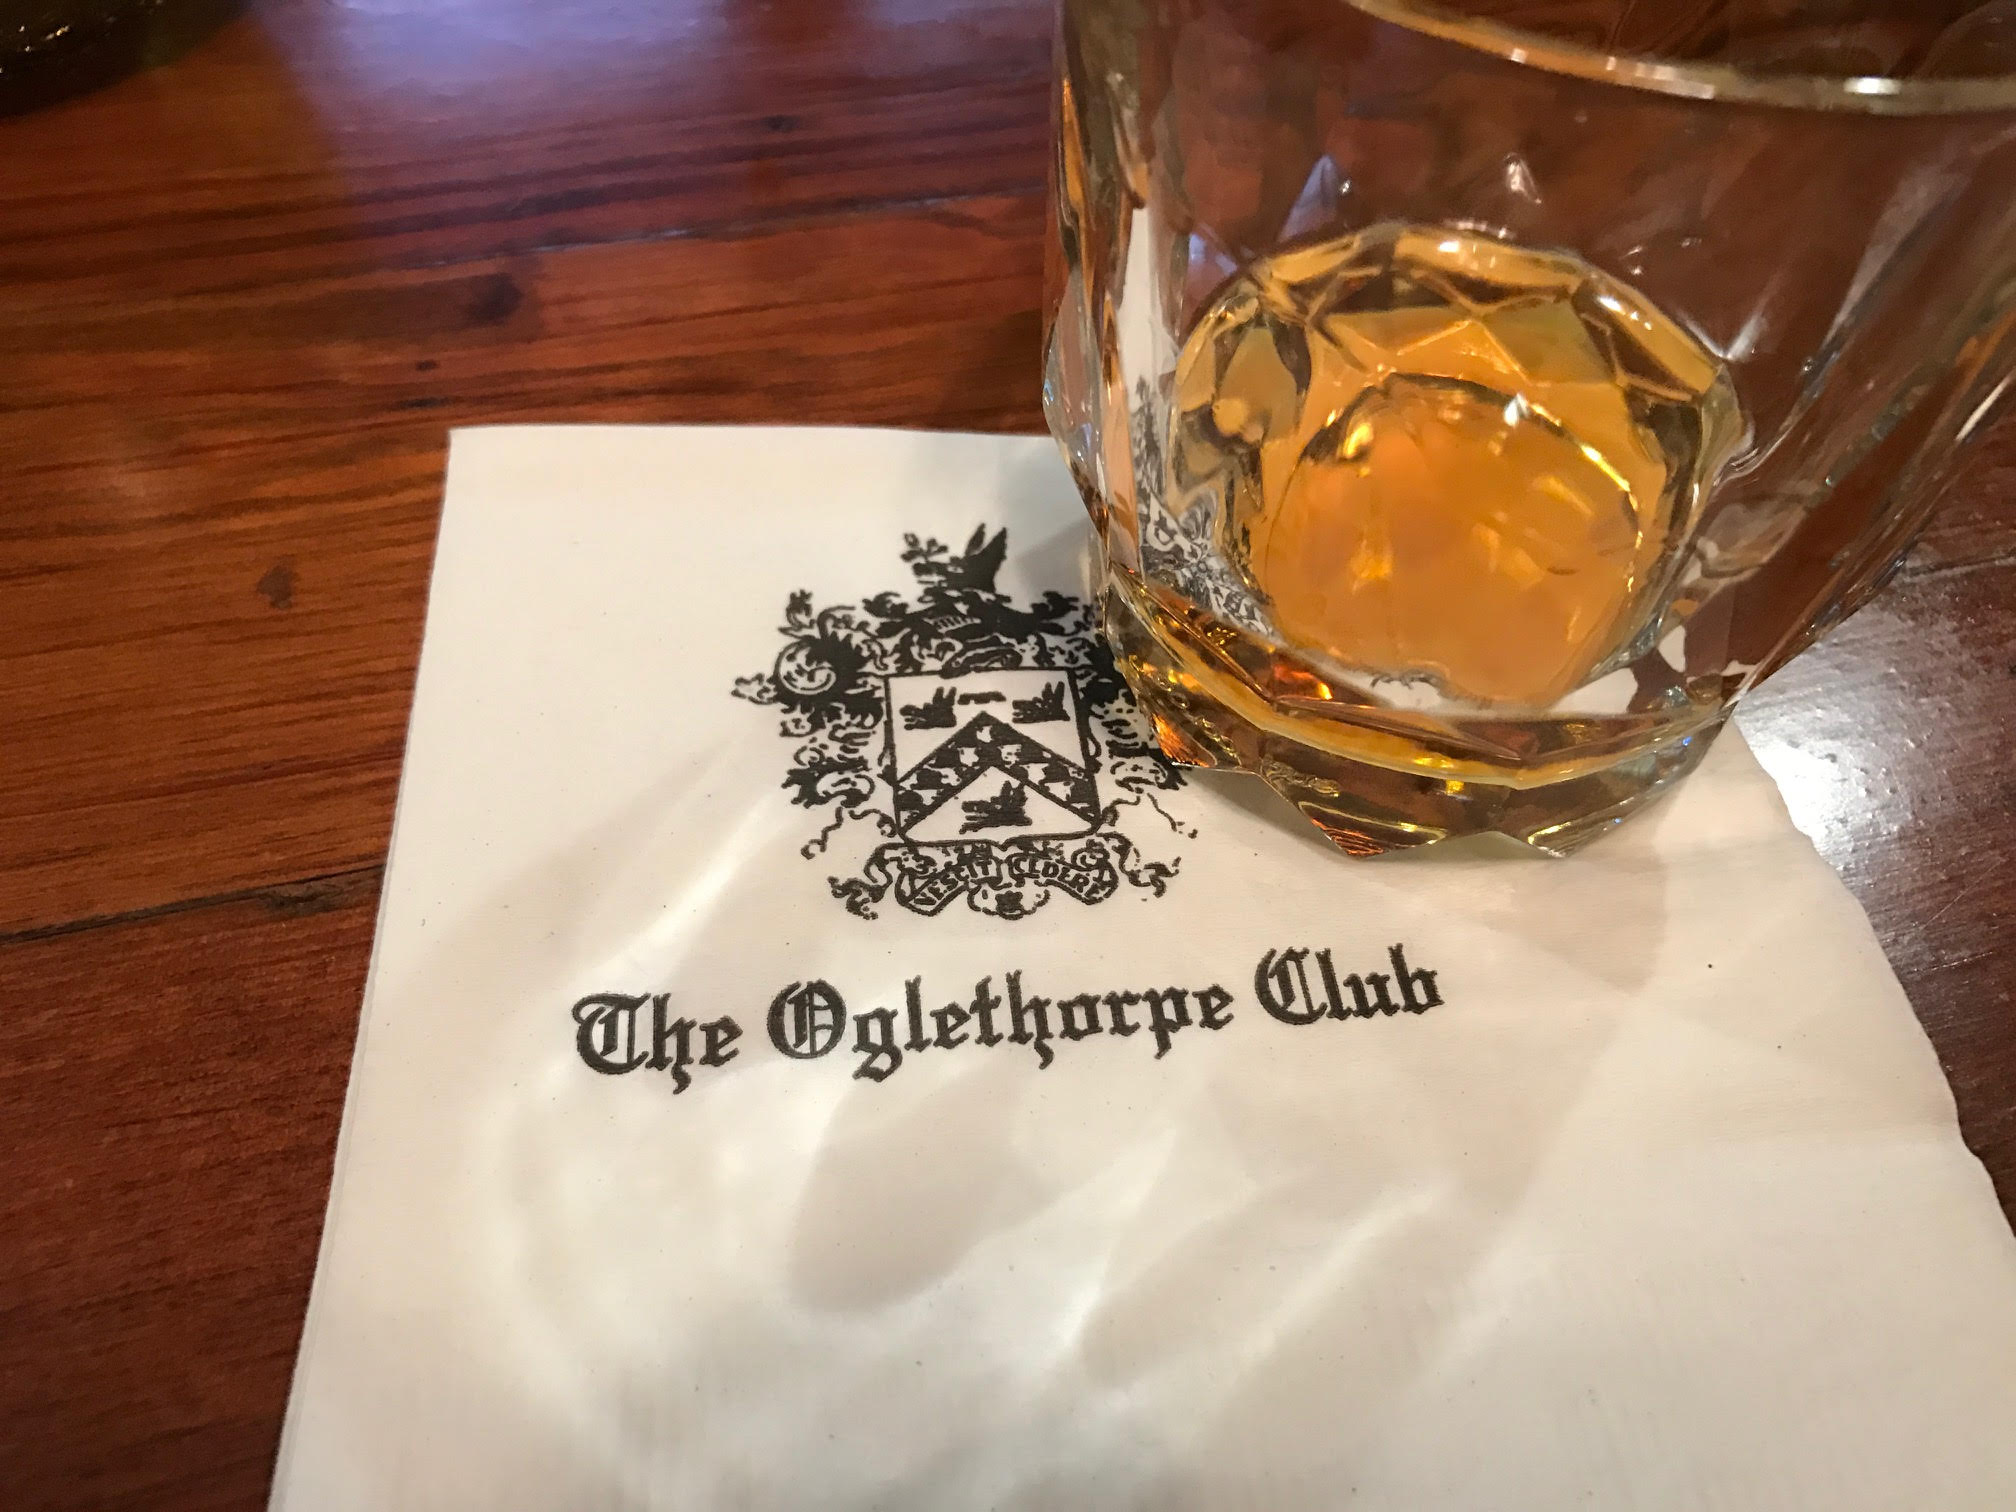 The Oglethorpe Club